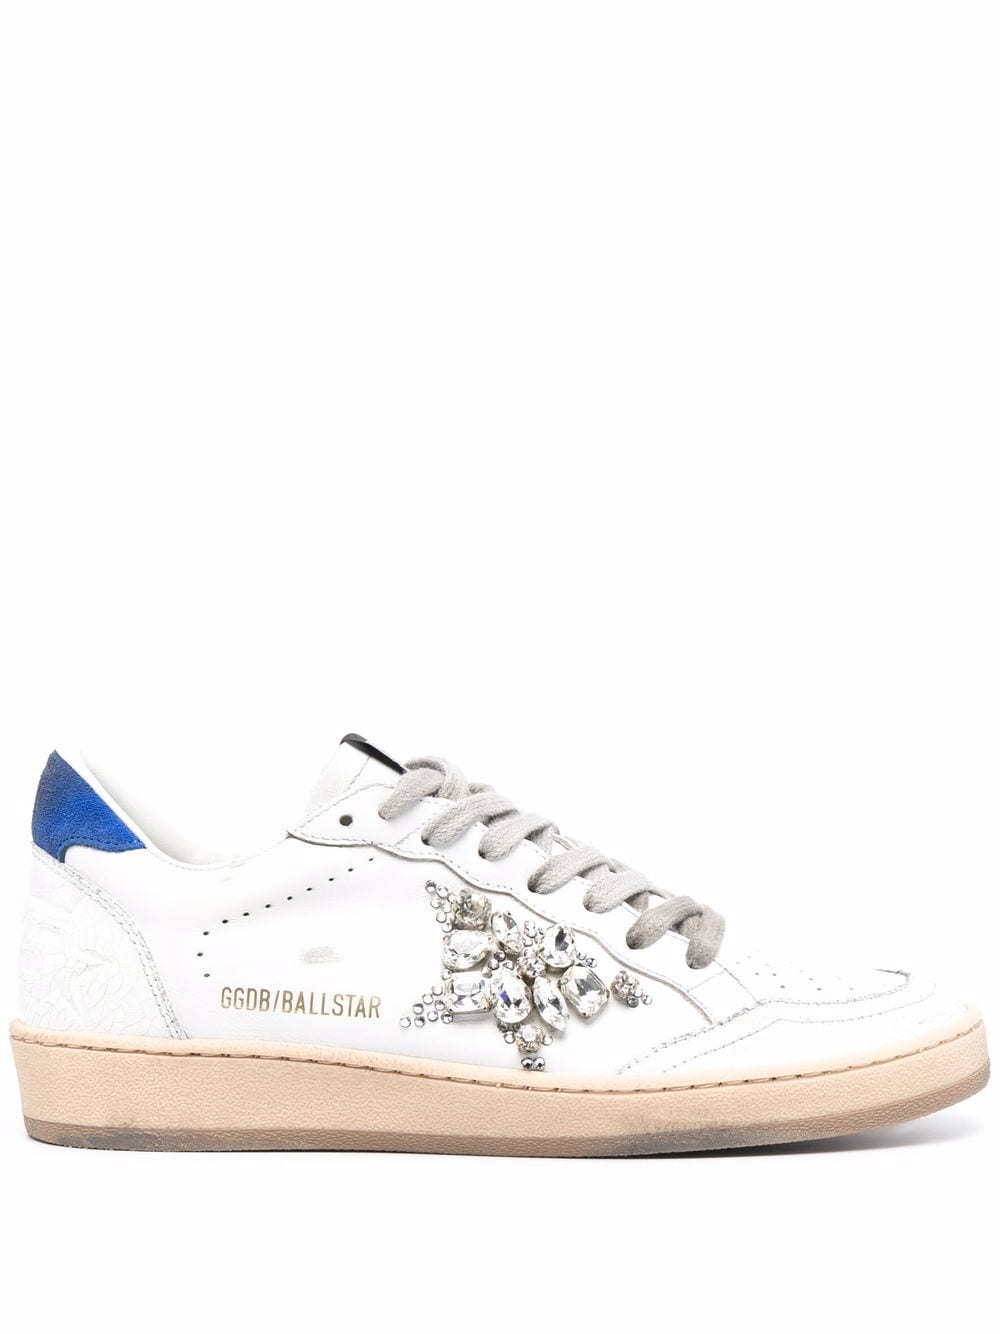 Picture of Golden Goose Deluxe Brand   Embellished Ball Star Sneaker